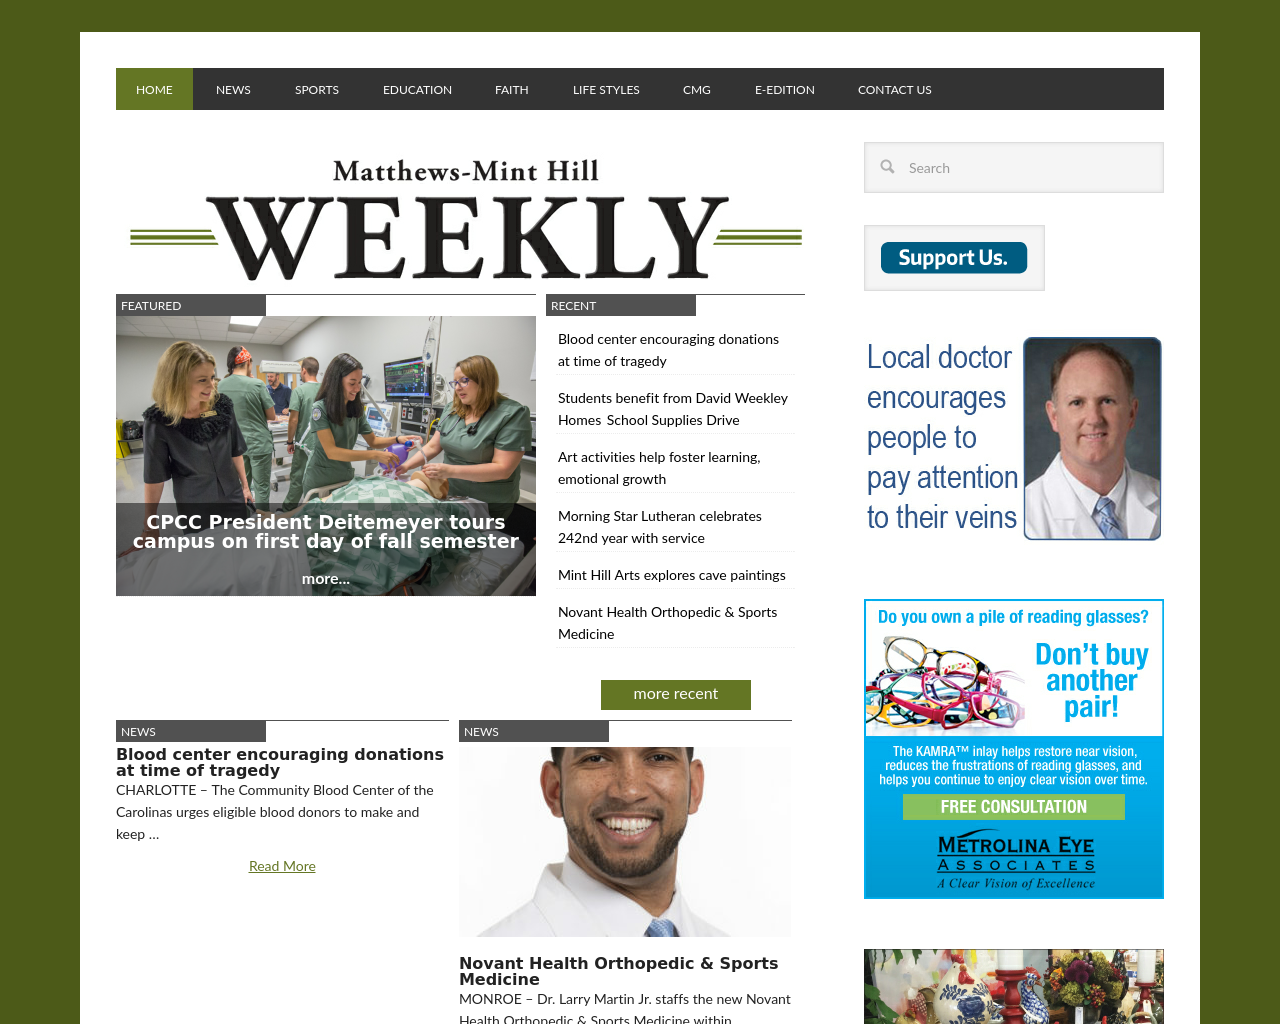 Matthews-Mint-Hill-Weekly-Advertising-Reviews-Pricing